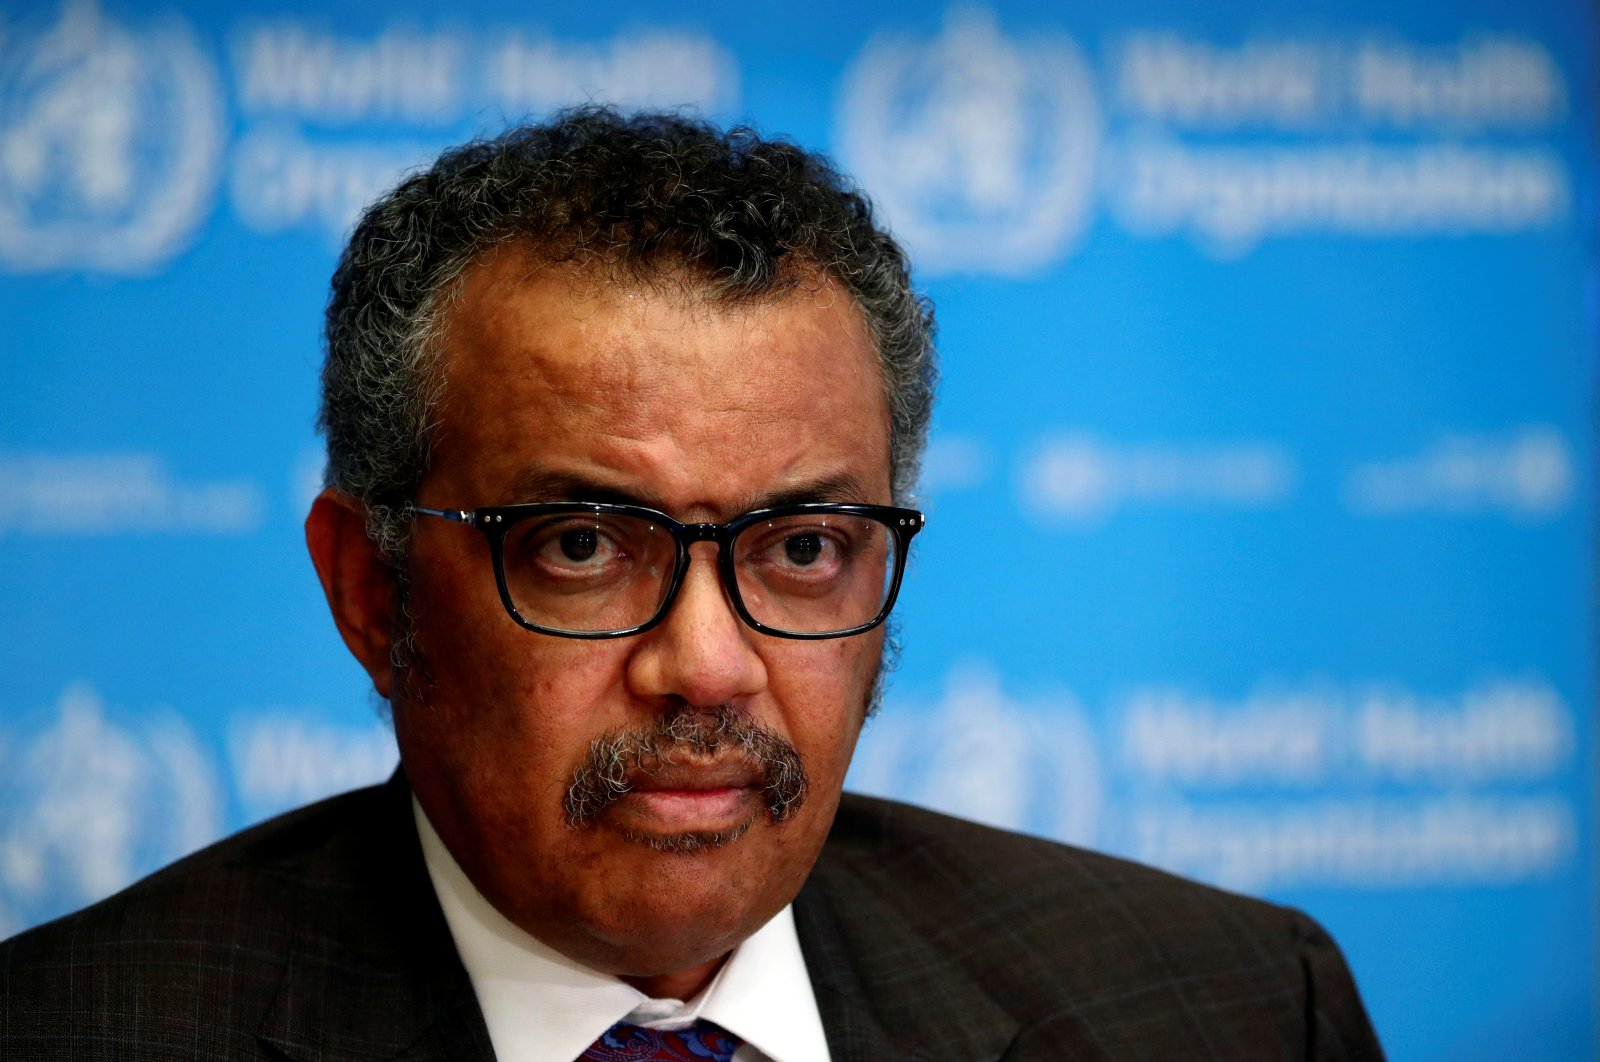 The director-general of the World Health Organization (WHO), Tedros Adhanom Ghebreyesus, attends a news conference on the situation of the coronavirus, Geneva, Feb. 28, 2020. (Reuters Photo)